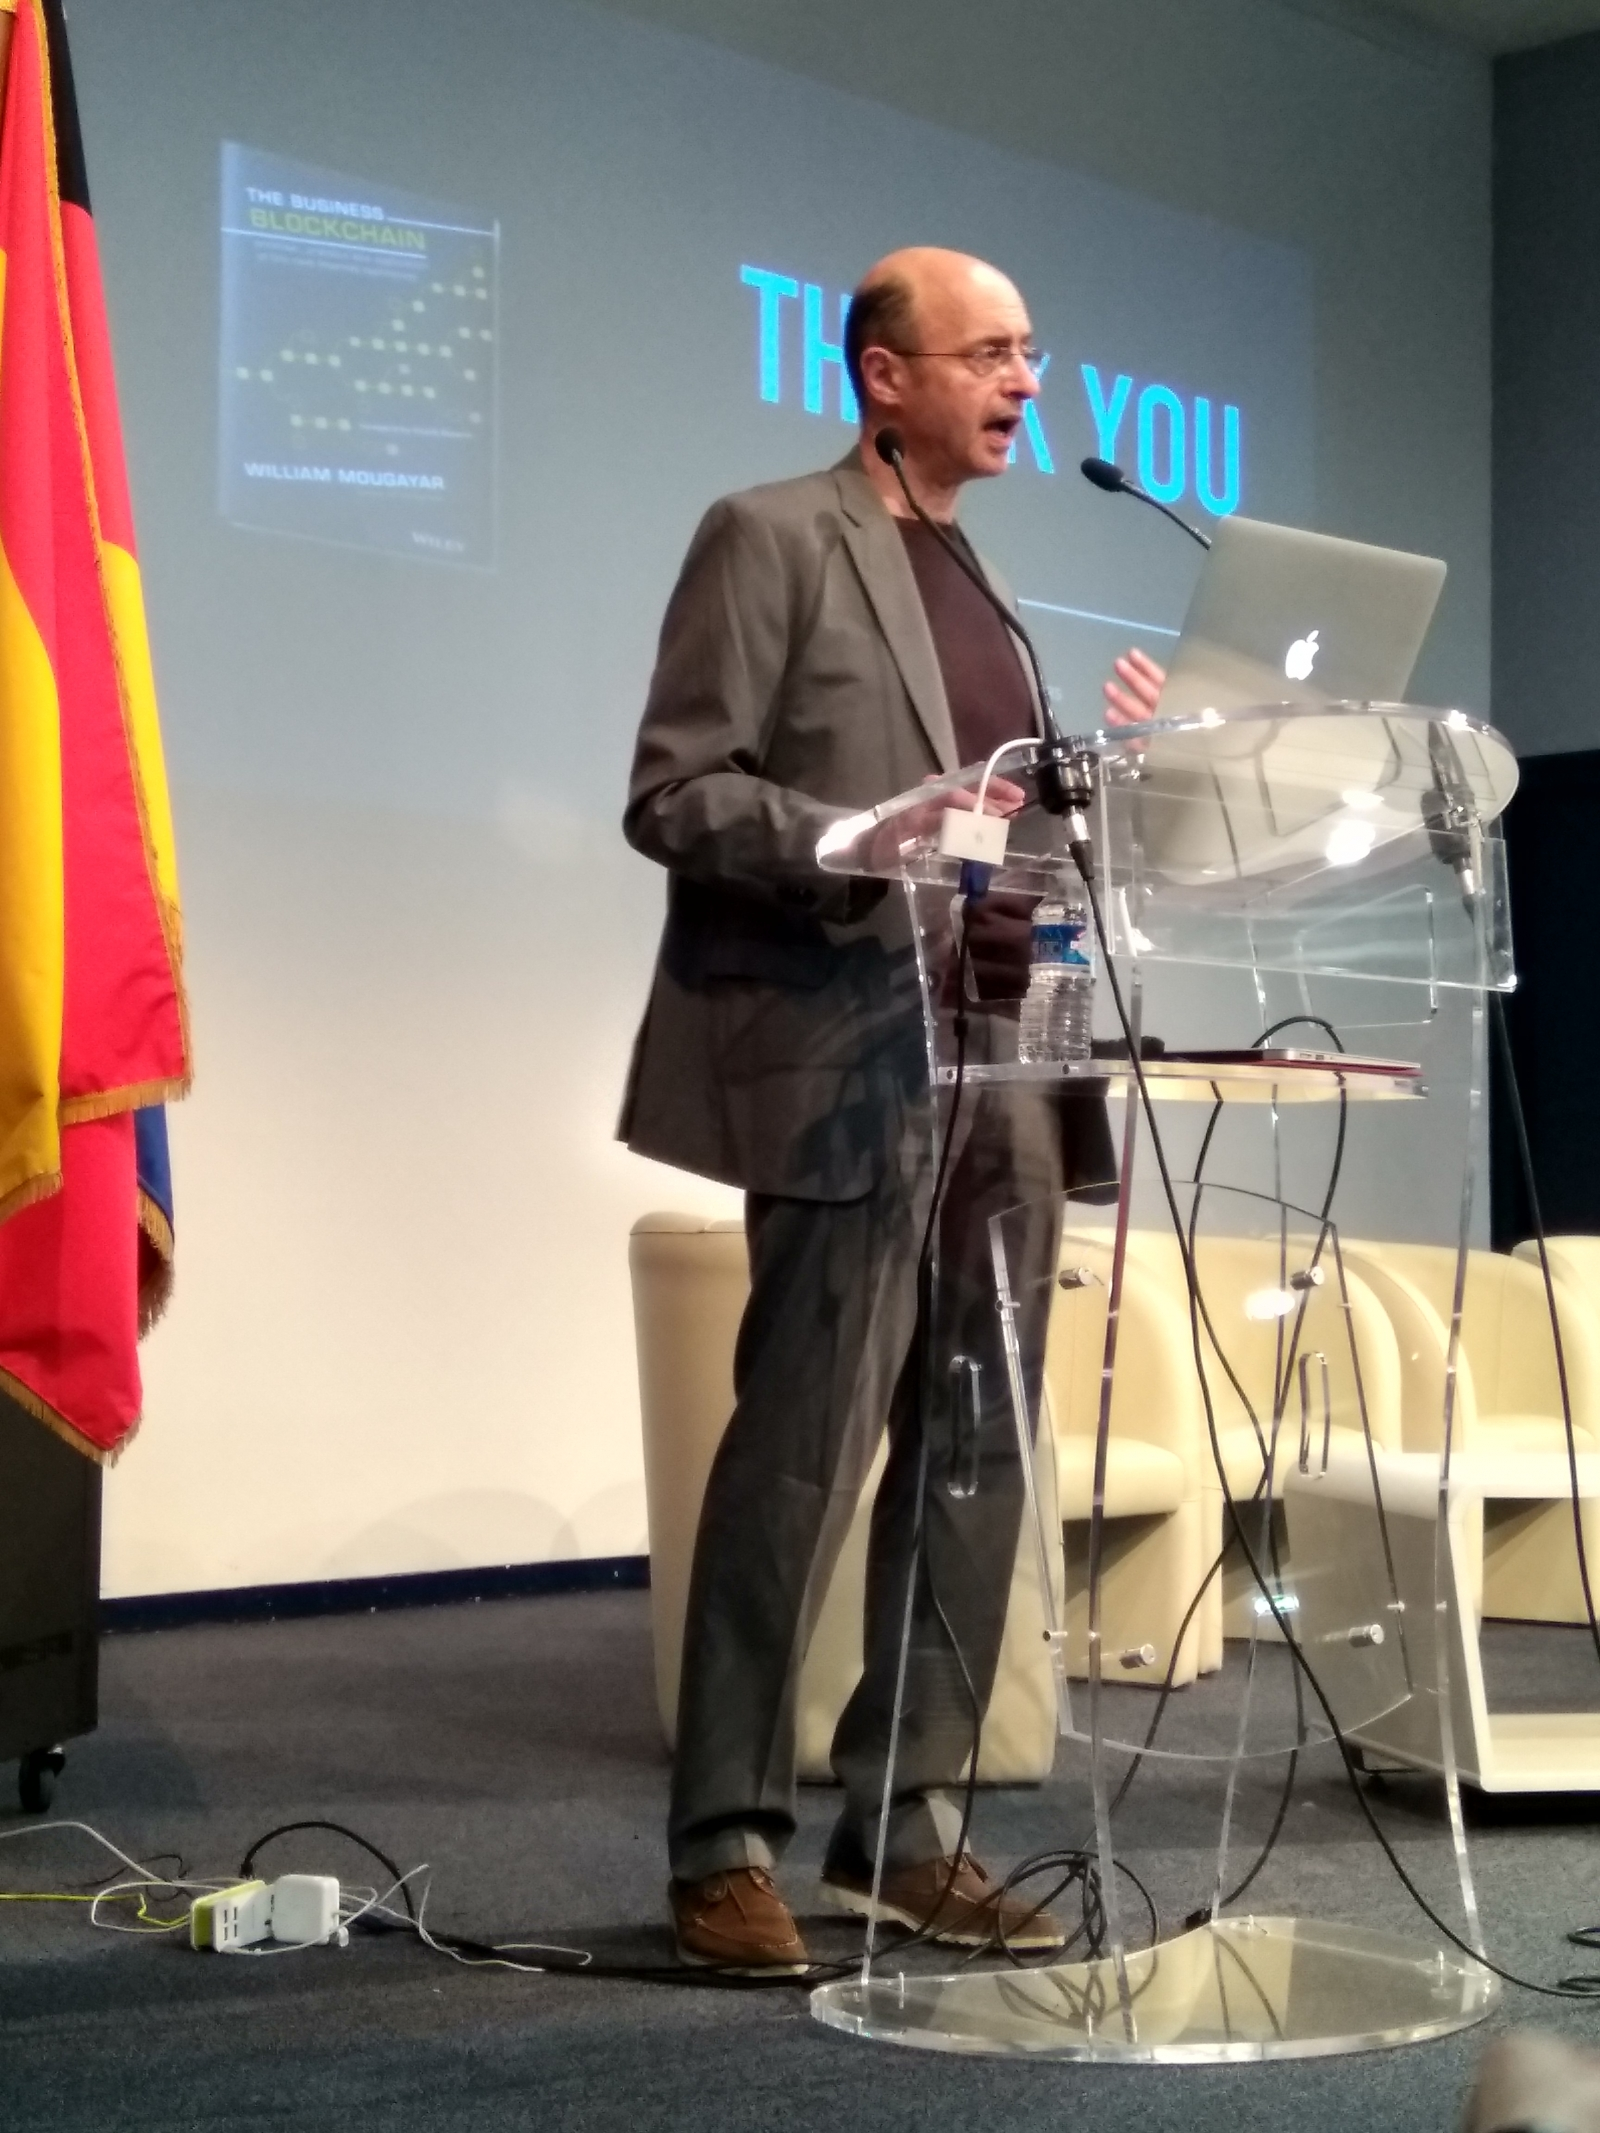 William Mougayar onstage at EDCON, Paris